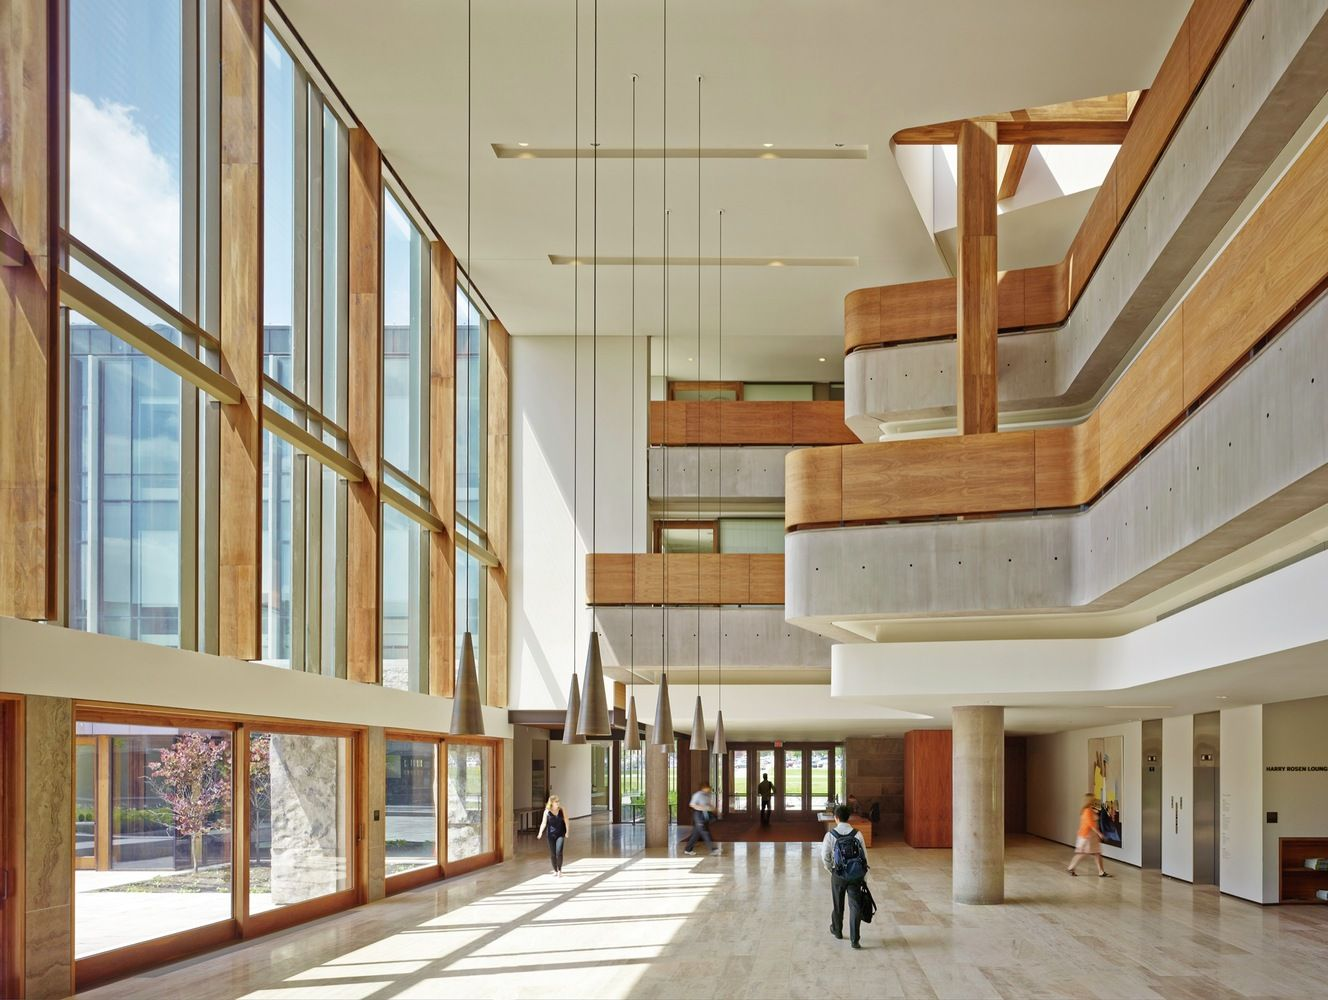 Harvard University to offer free online architecture course